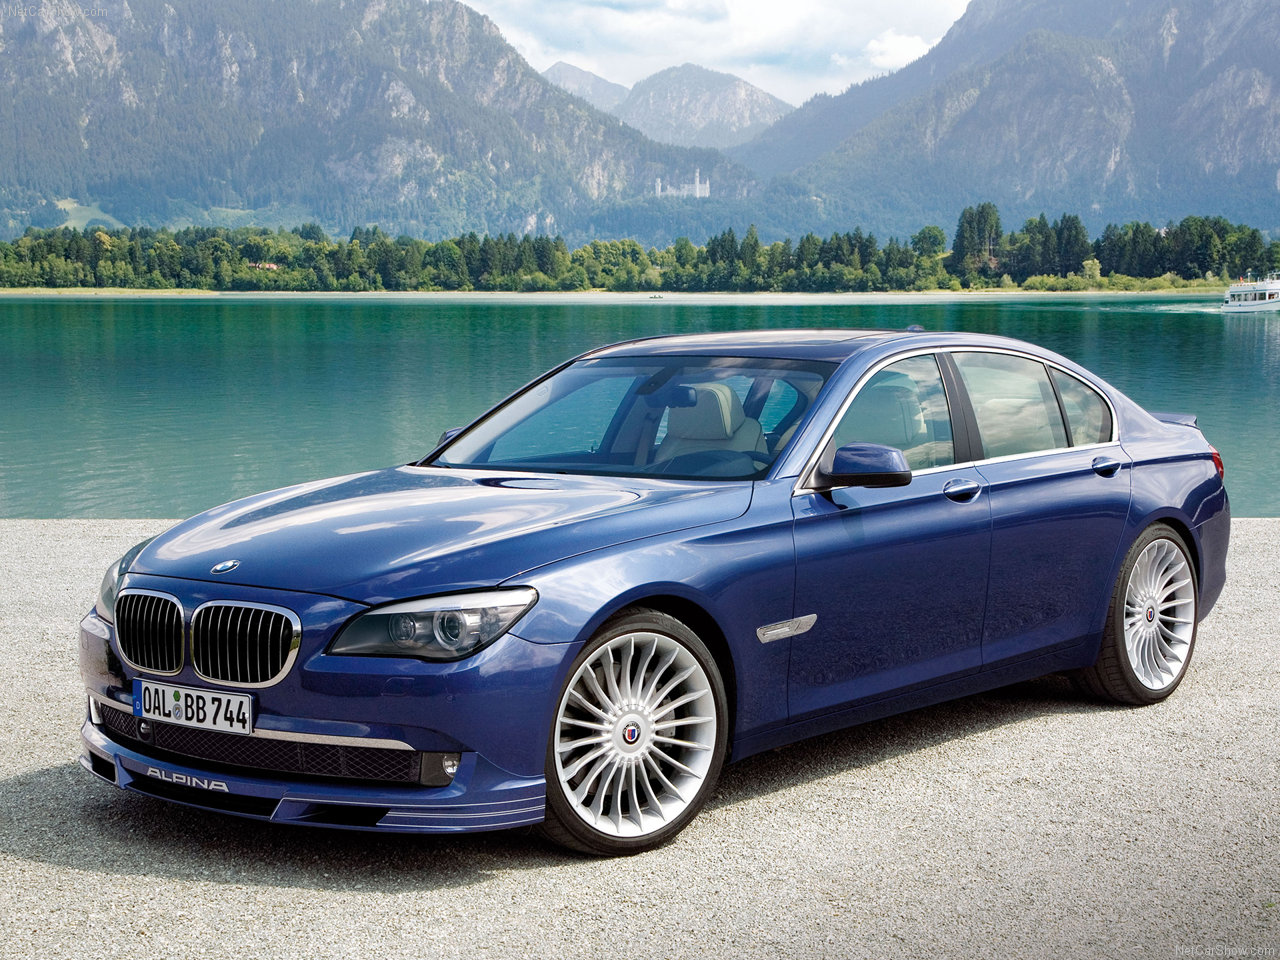 2007 BMW Alpina B7 Base picture